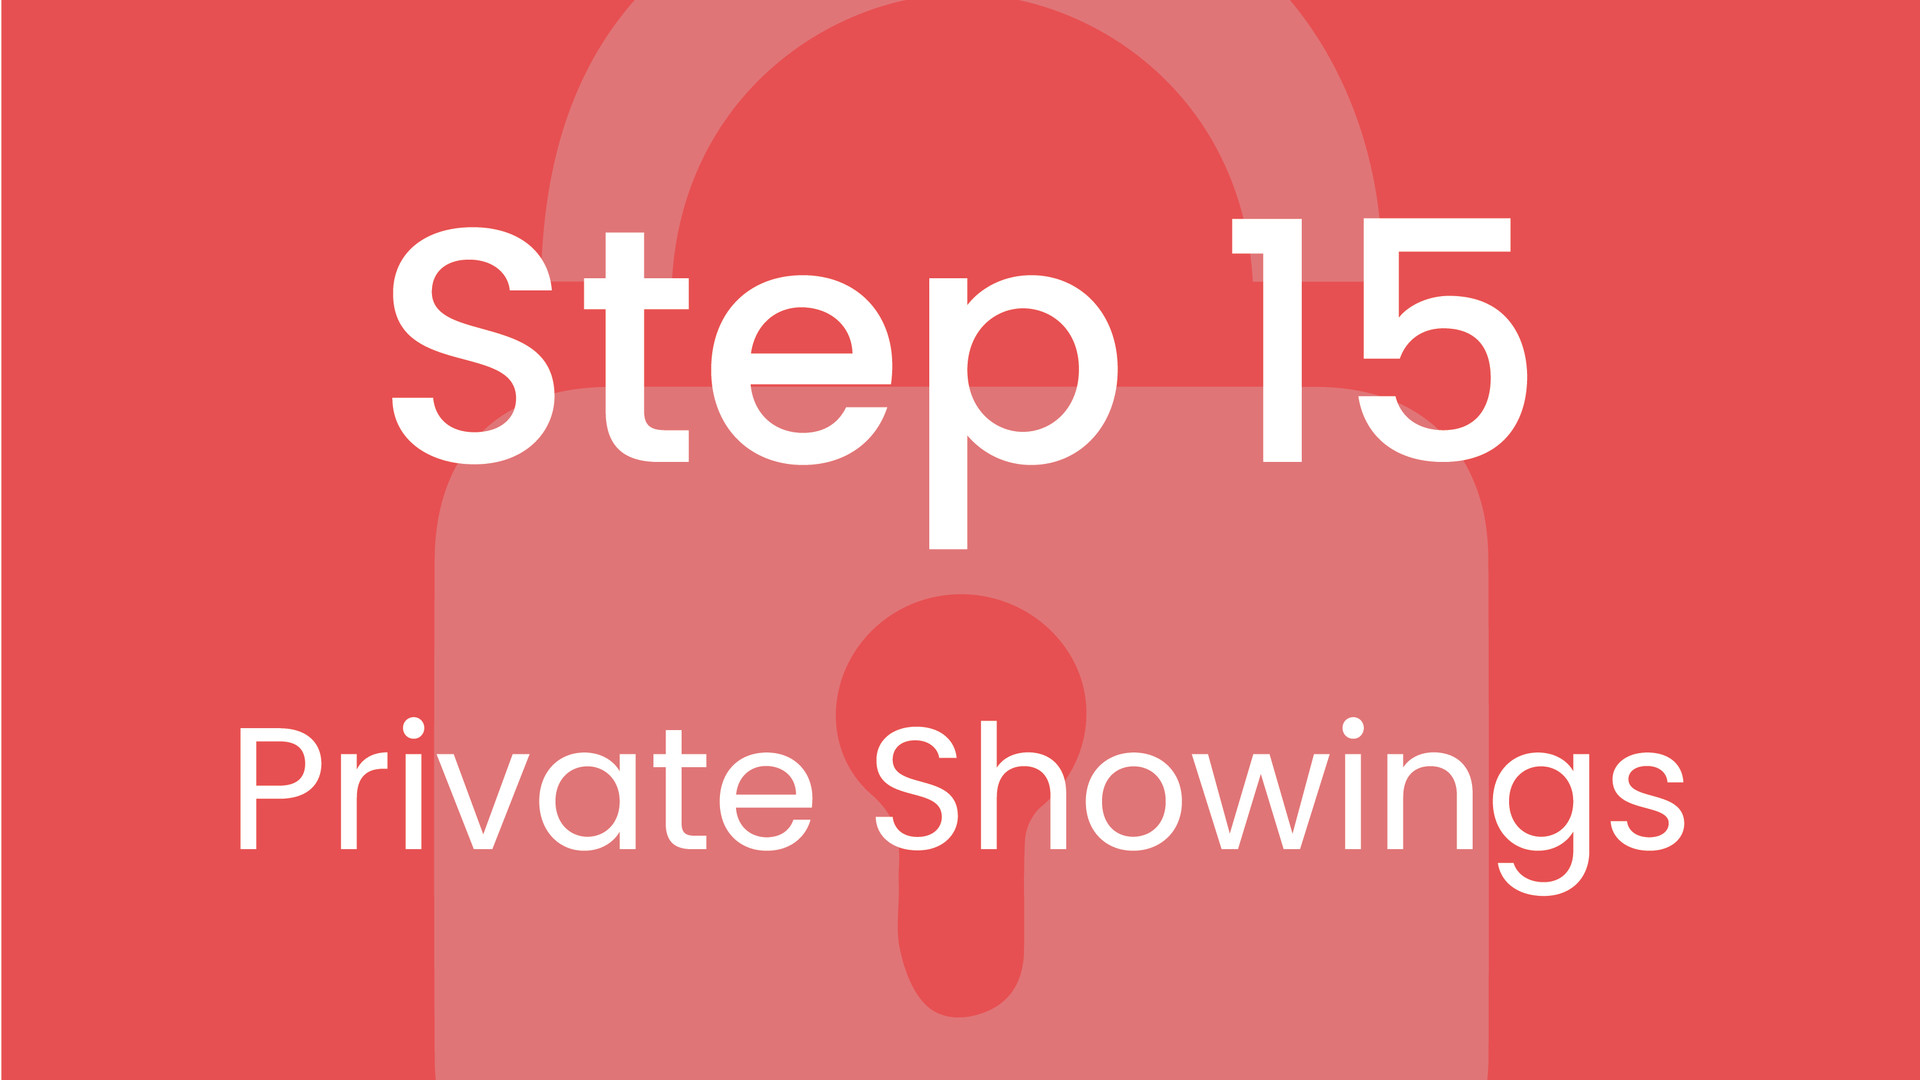 Step 15: Private Showings